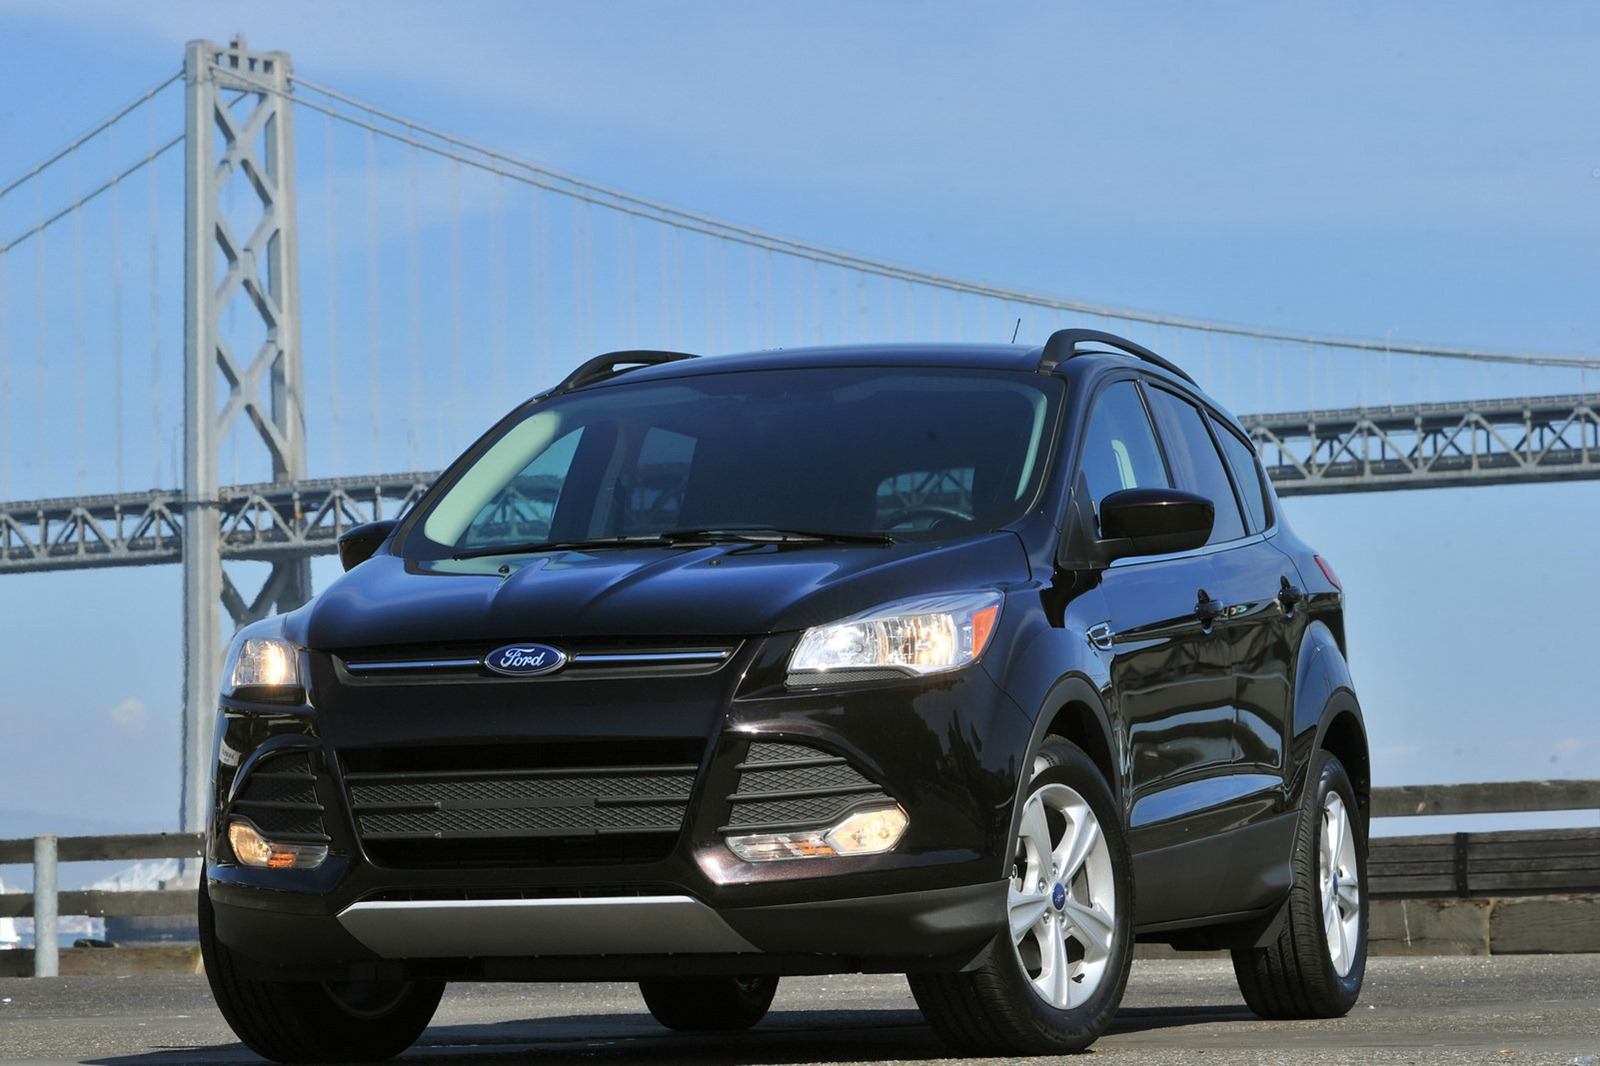 2013-Ford-Escape-5%25255B2%25255D.jpg